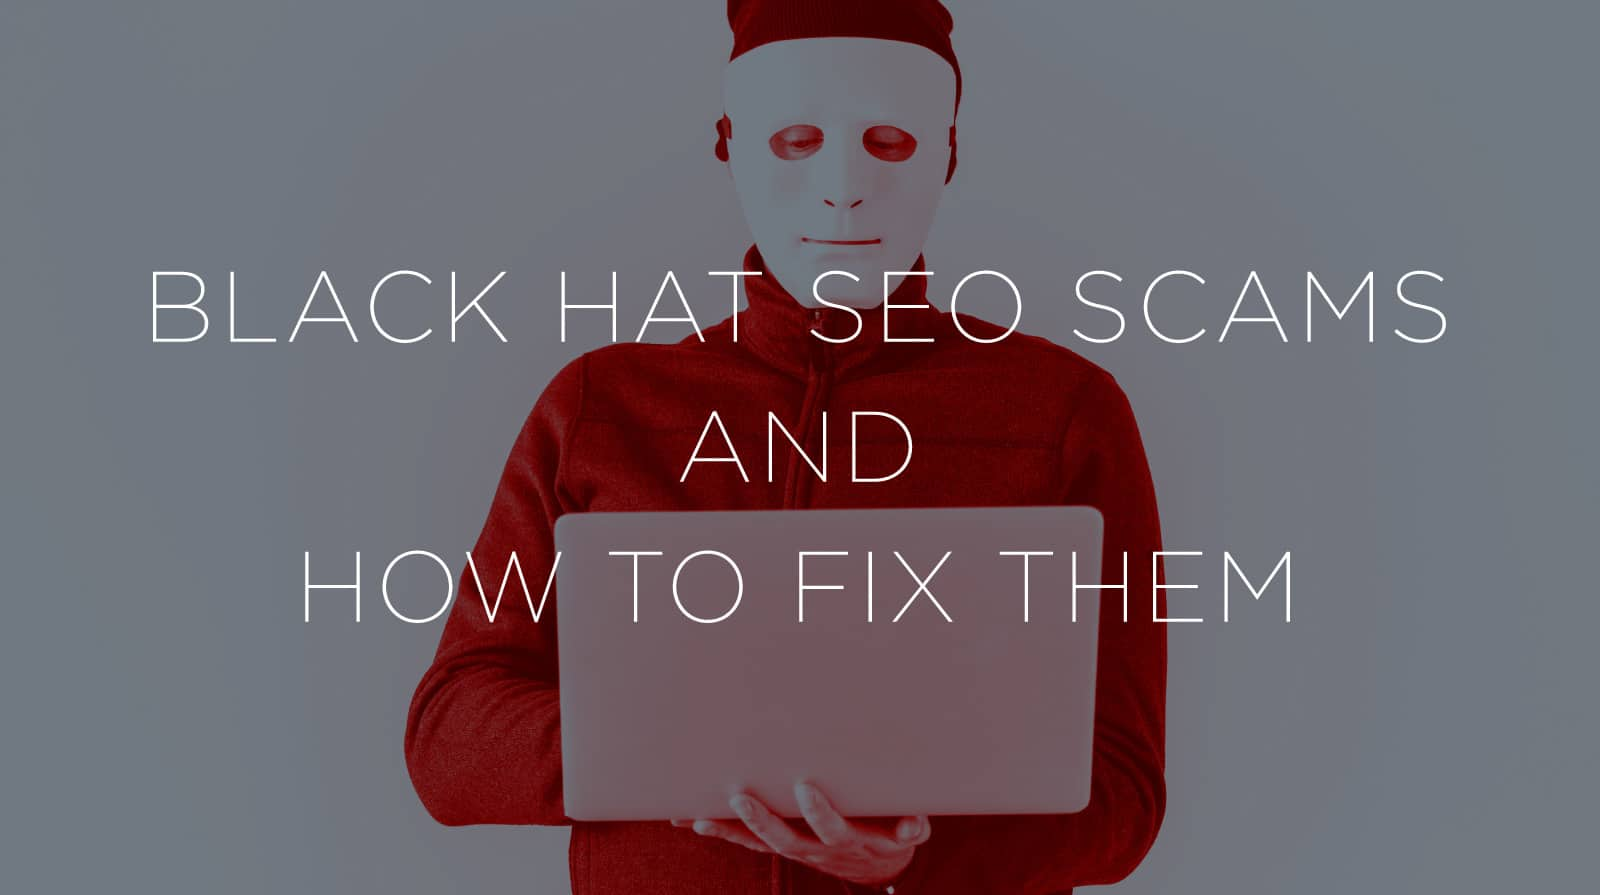 Black Hat SEO Scams and How to Fix Them